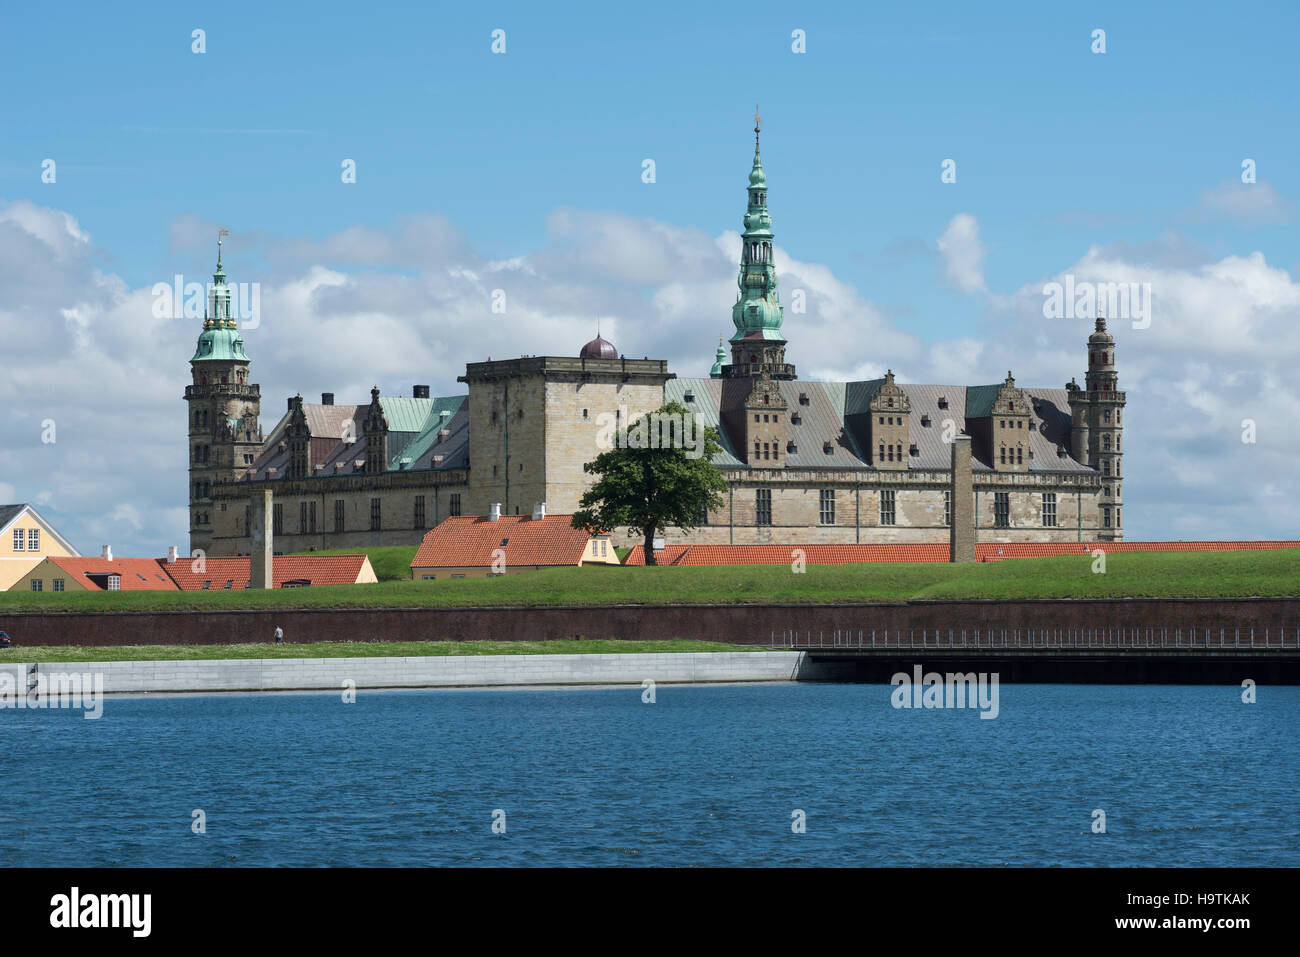 Kronborg Castle and fortress in Elsinore, Denmark - Stock Image